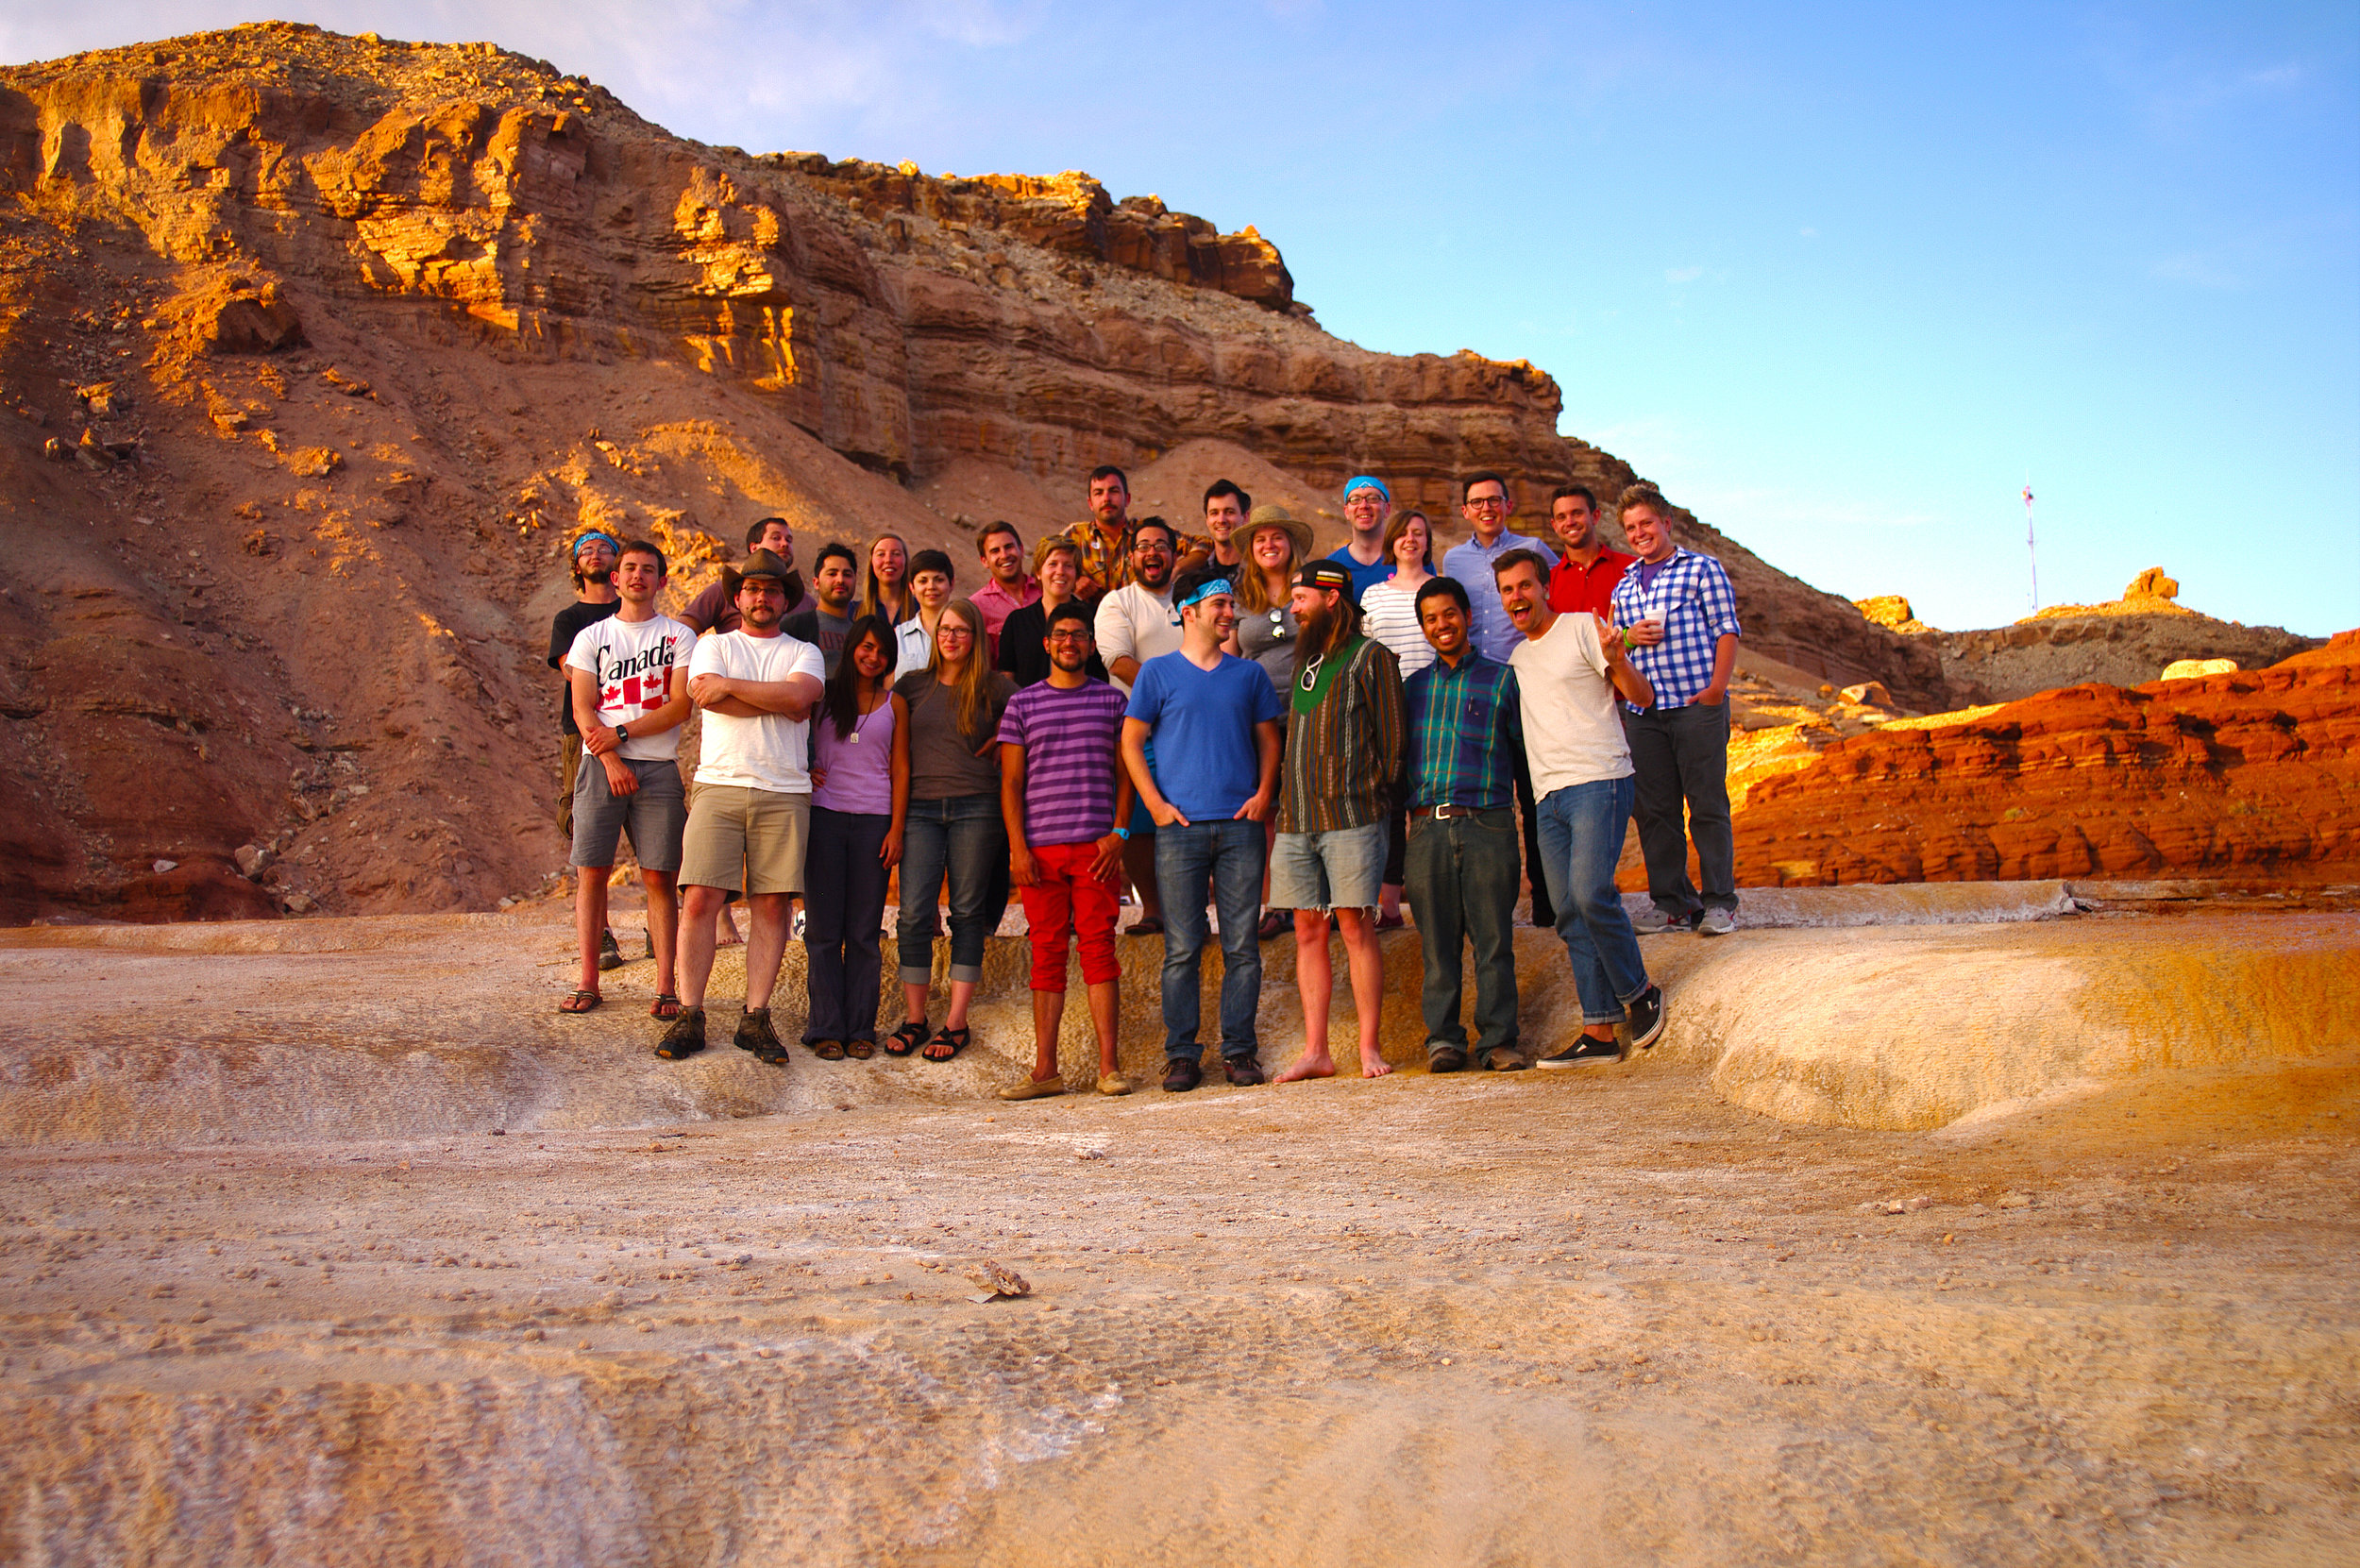 Photo of Epicenter's Summer Summit event in 2013 featuring many returning Frontier Fellows